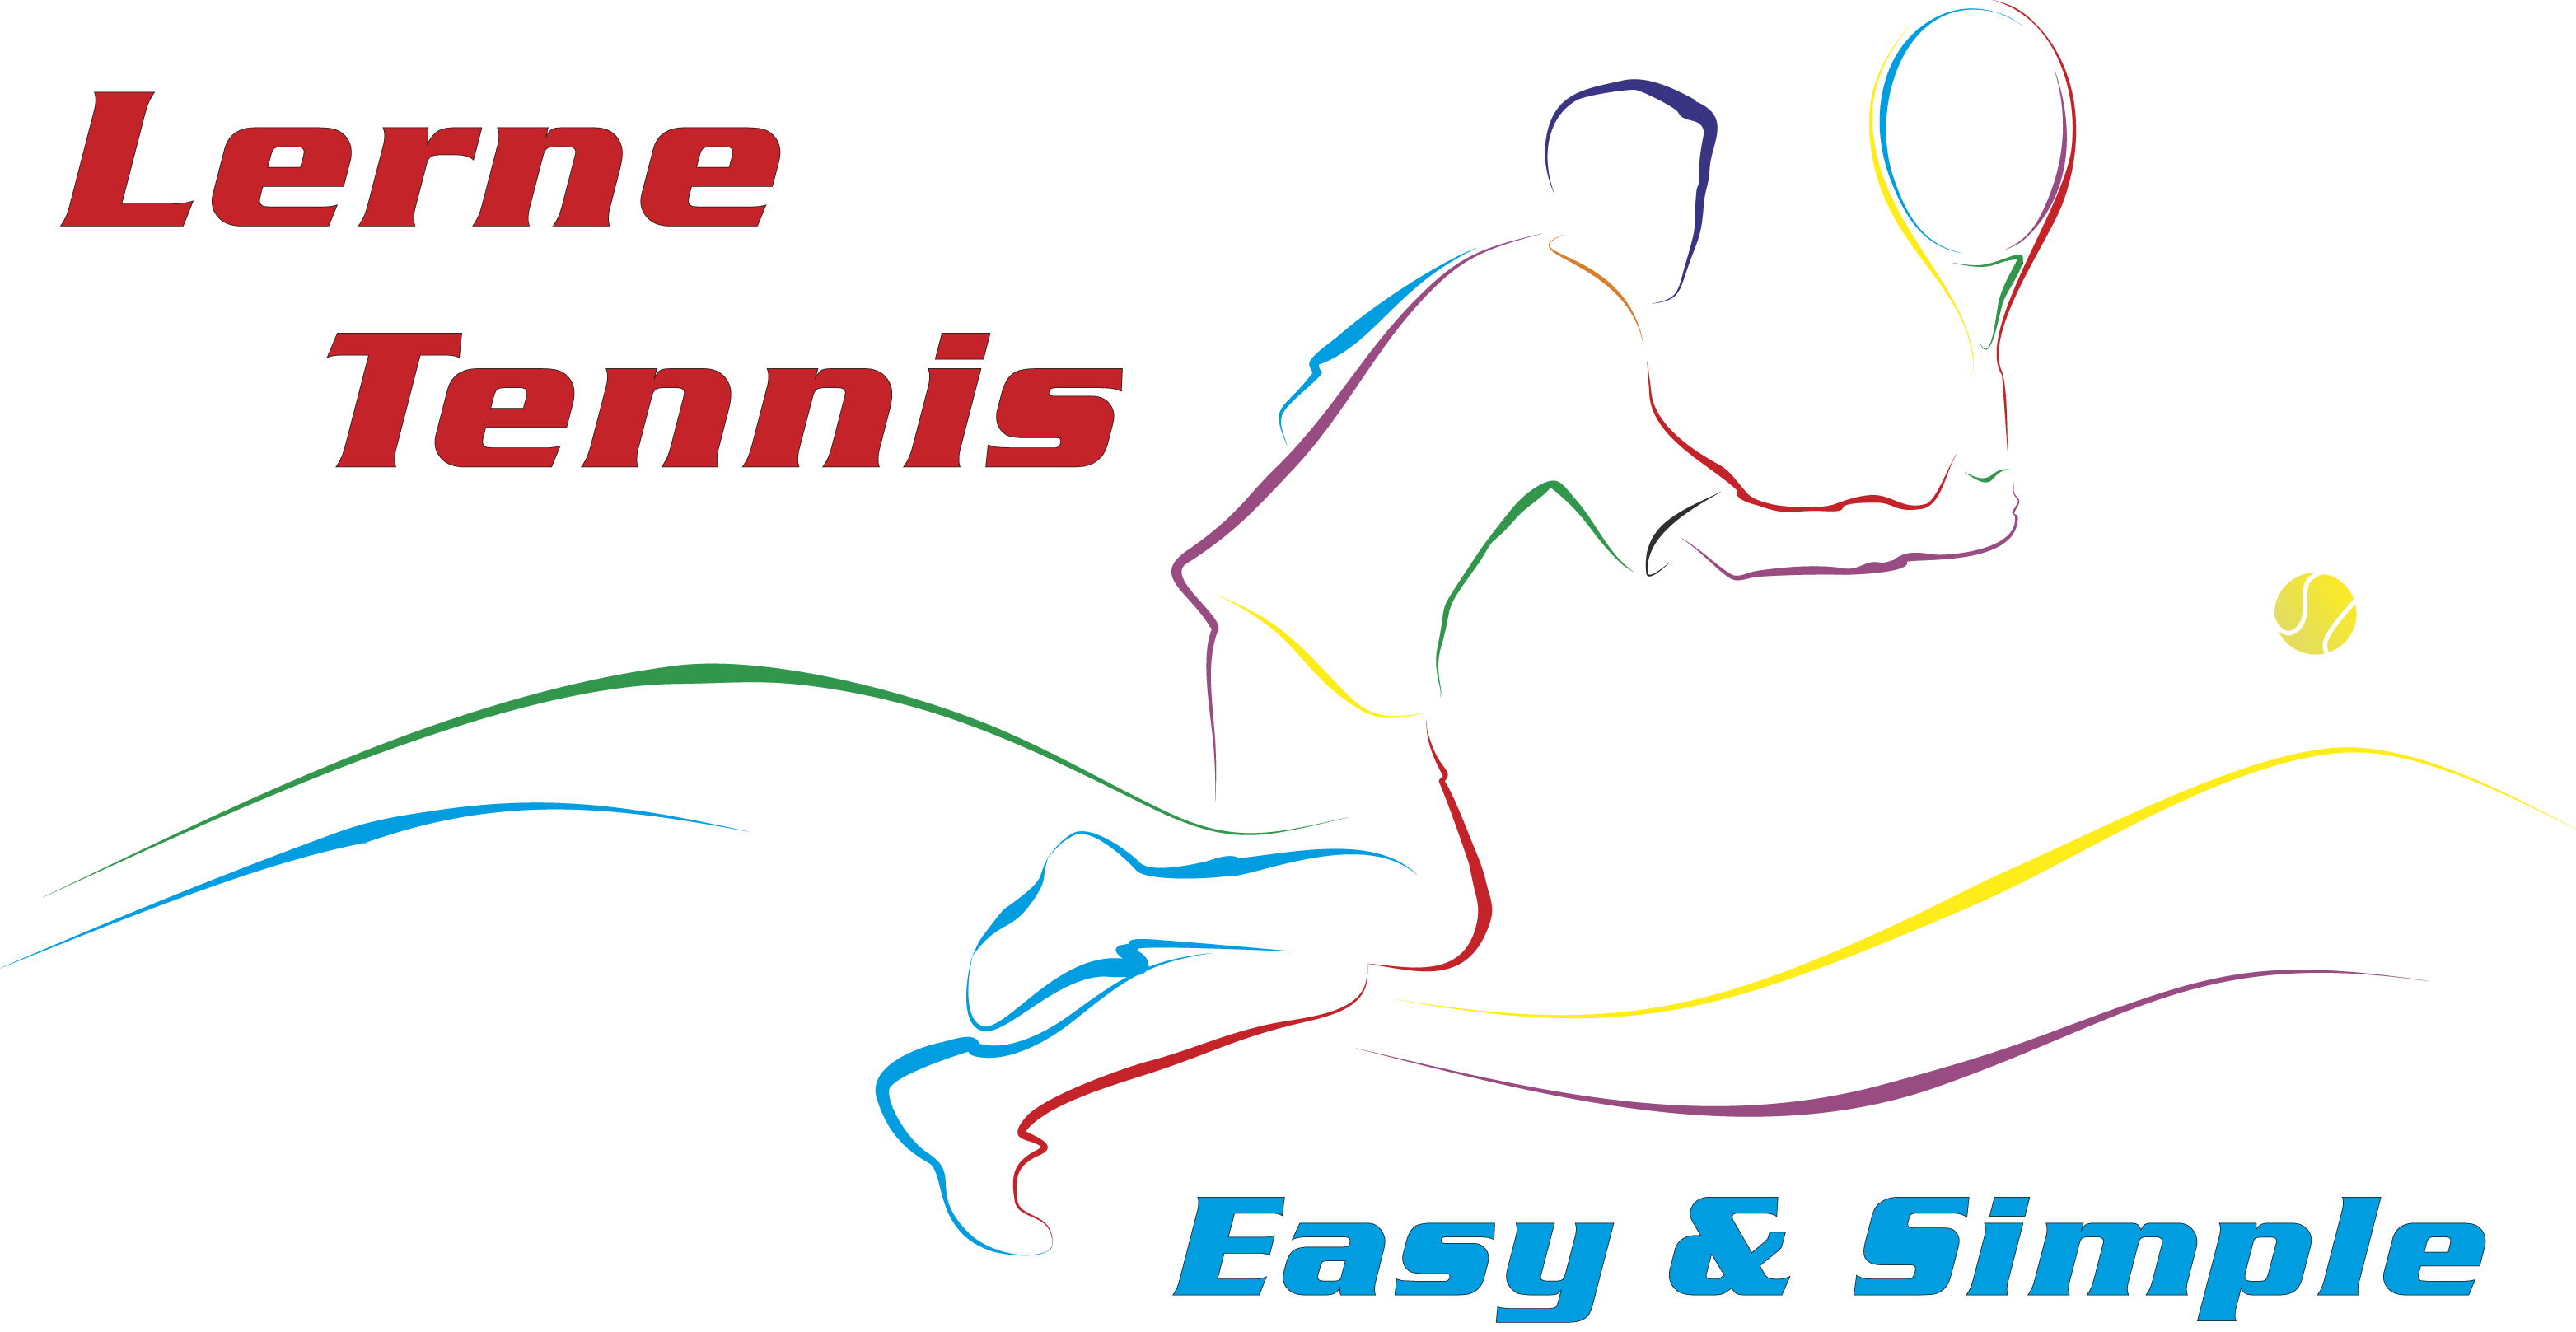 18-03-23 Logo easy tennis